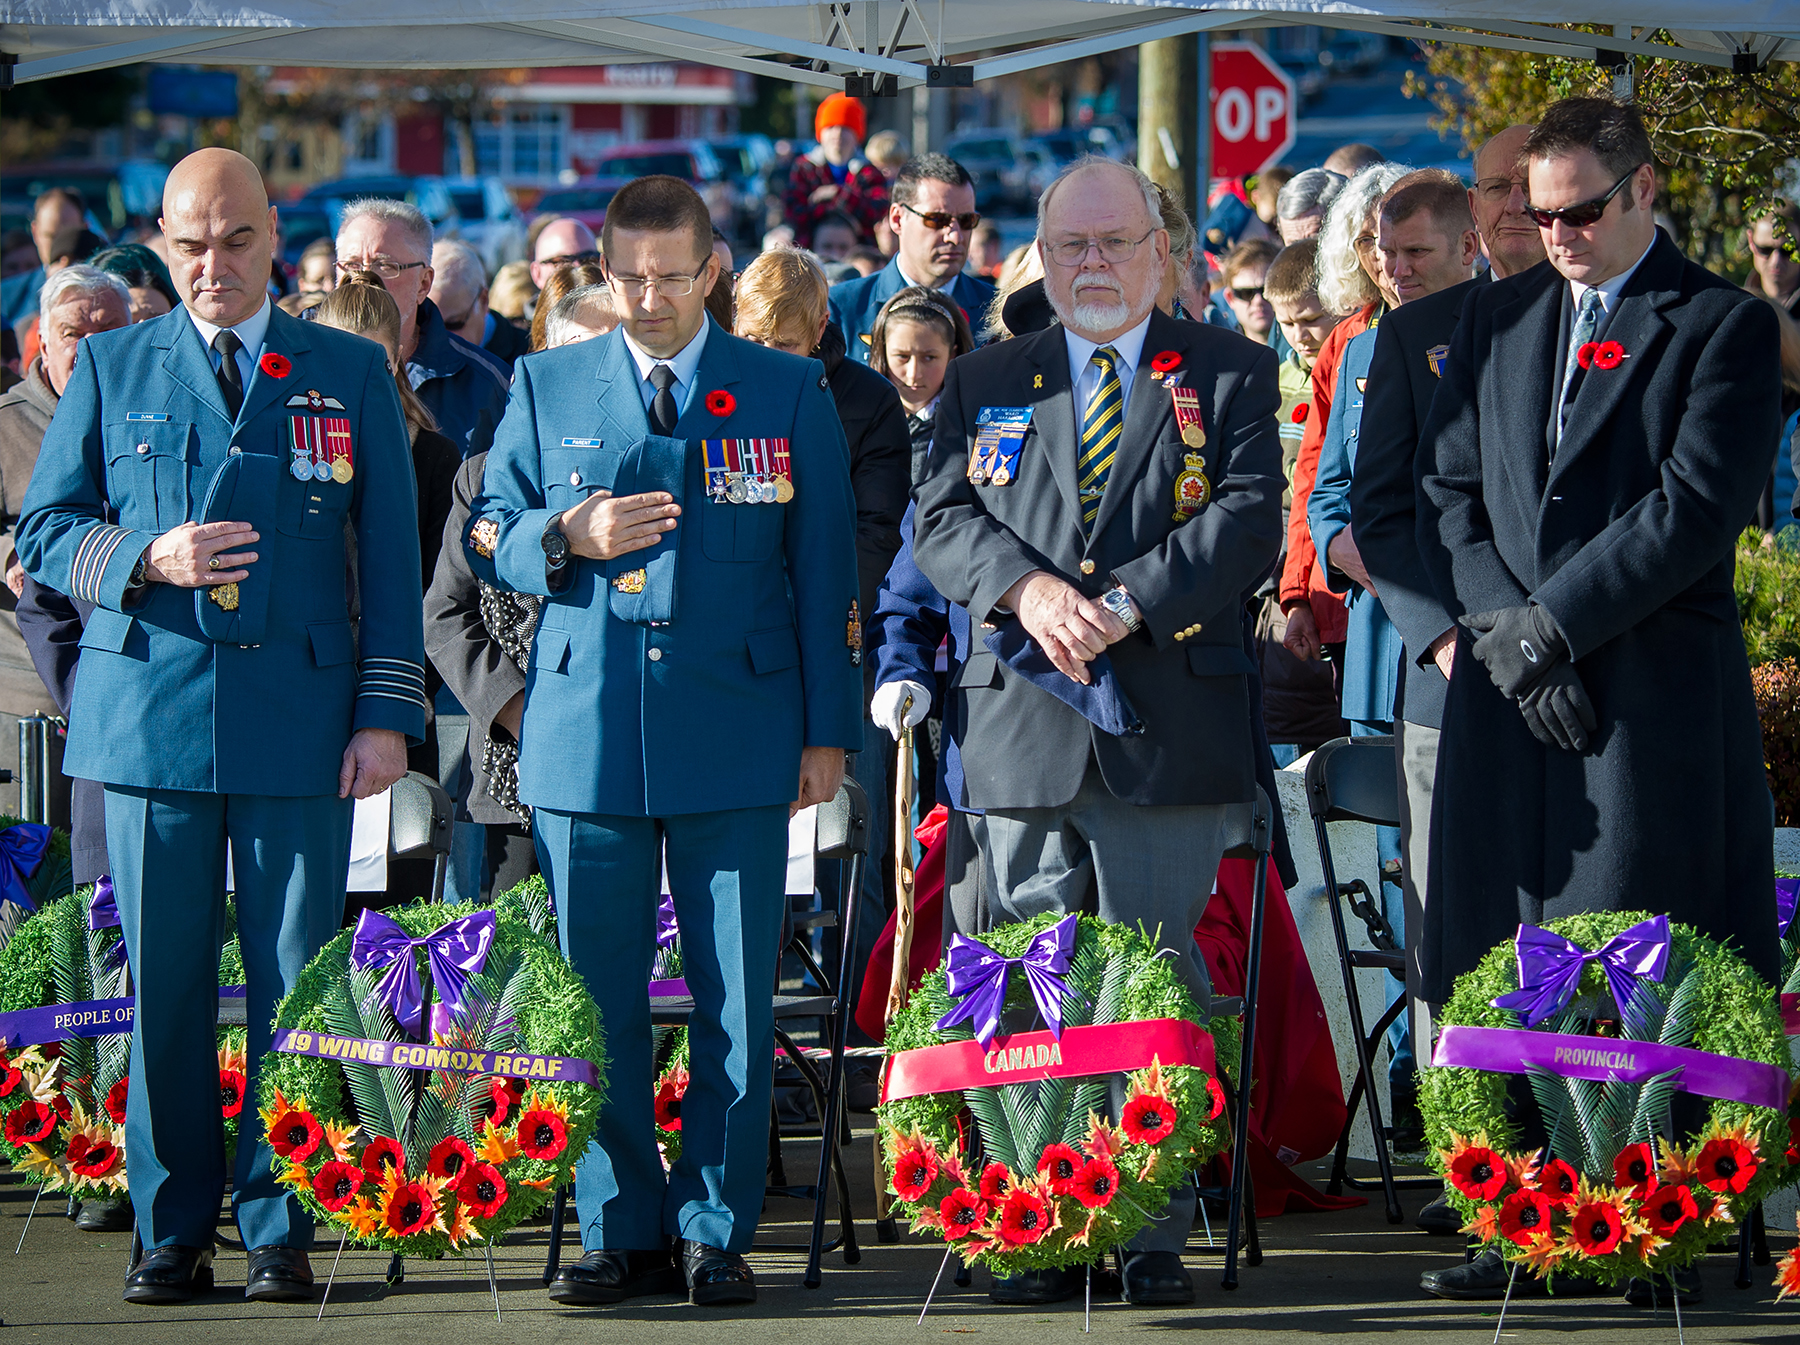 19 Wing Comox, British Columbia, wing commander Colonel Tom Dunne (left); 19 Wing chief warrant officer, Chief Warrant Officer Jean-Claude Parent; Mr. Ward, a veteran and member of Royal Canadian Legion Branch #28; and Mr. Don McRae, Member of the Legislative Assembly, observe a minute of silent during the Remembrance Day ceremony held in the village of Cumberland, British Columbia, on November 11, 2015. PHOTO: Corporal Pierre Létourneau